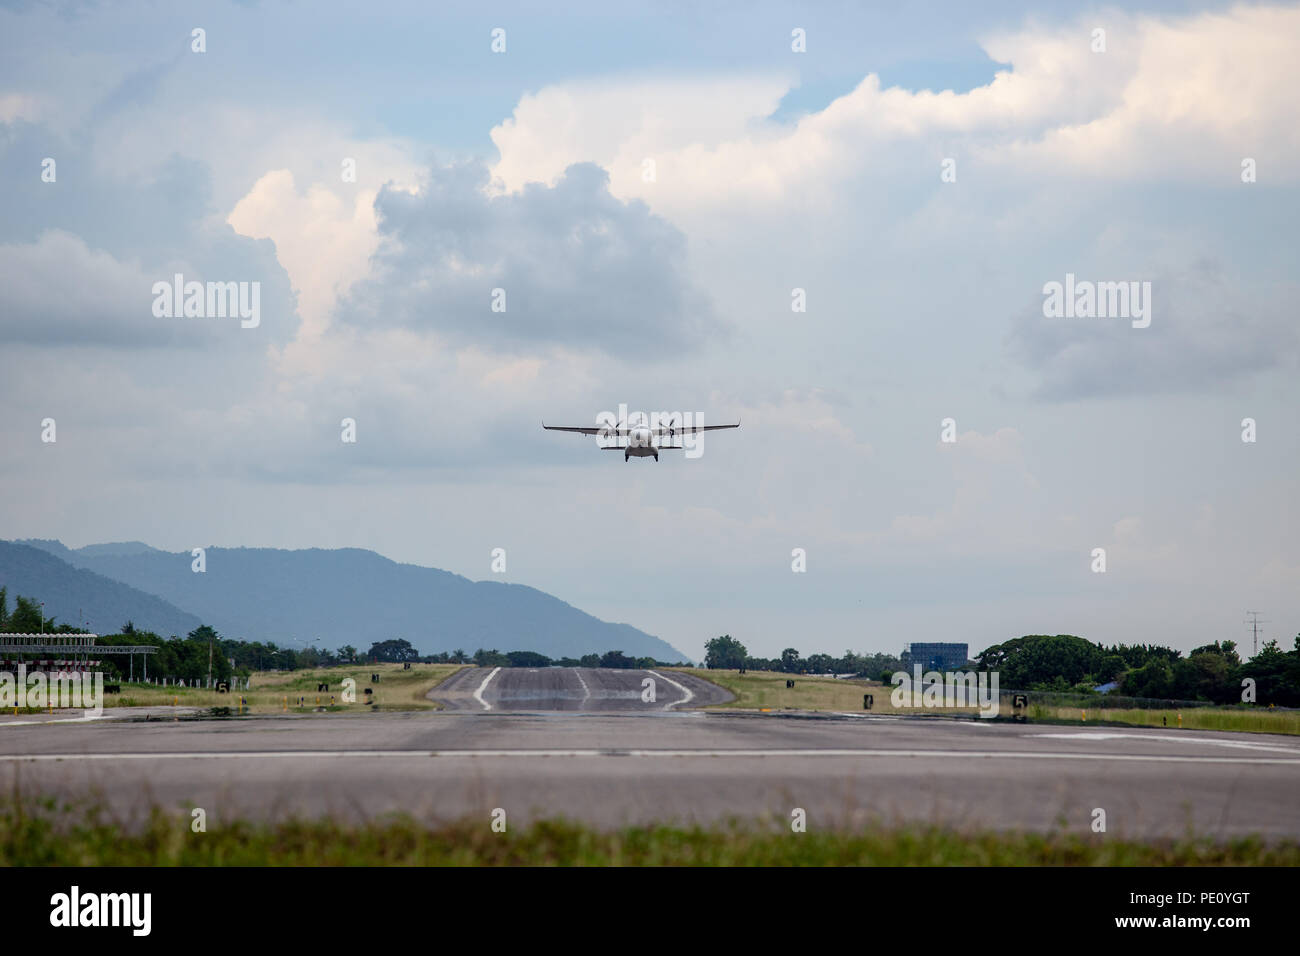 twin engines propeller aircraft take off from runway and climb with cloud and sky background and copy space - Stock Image